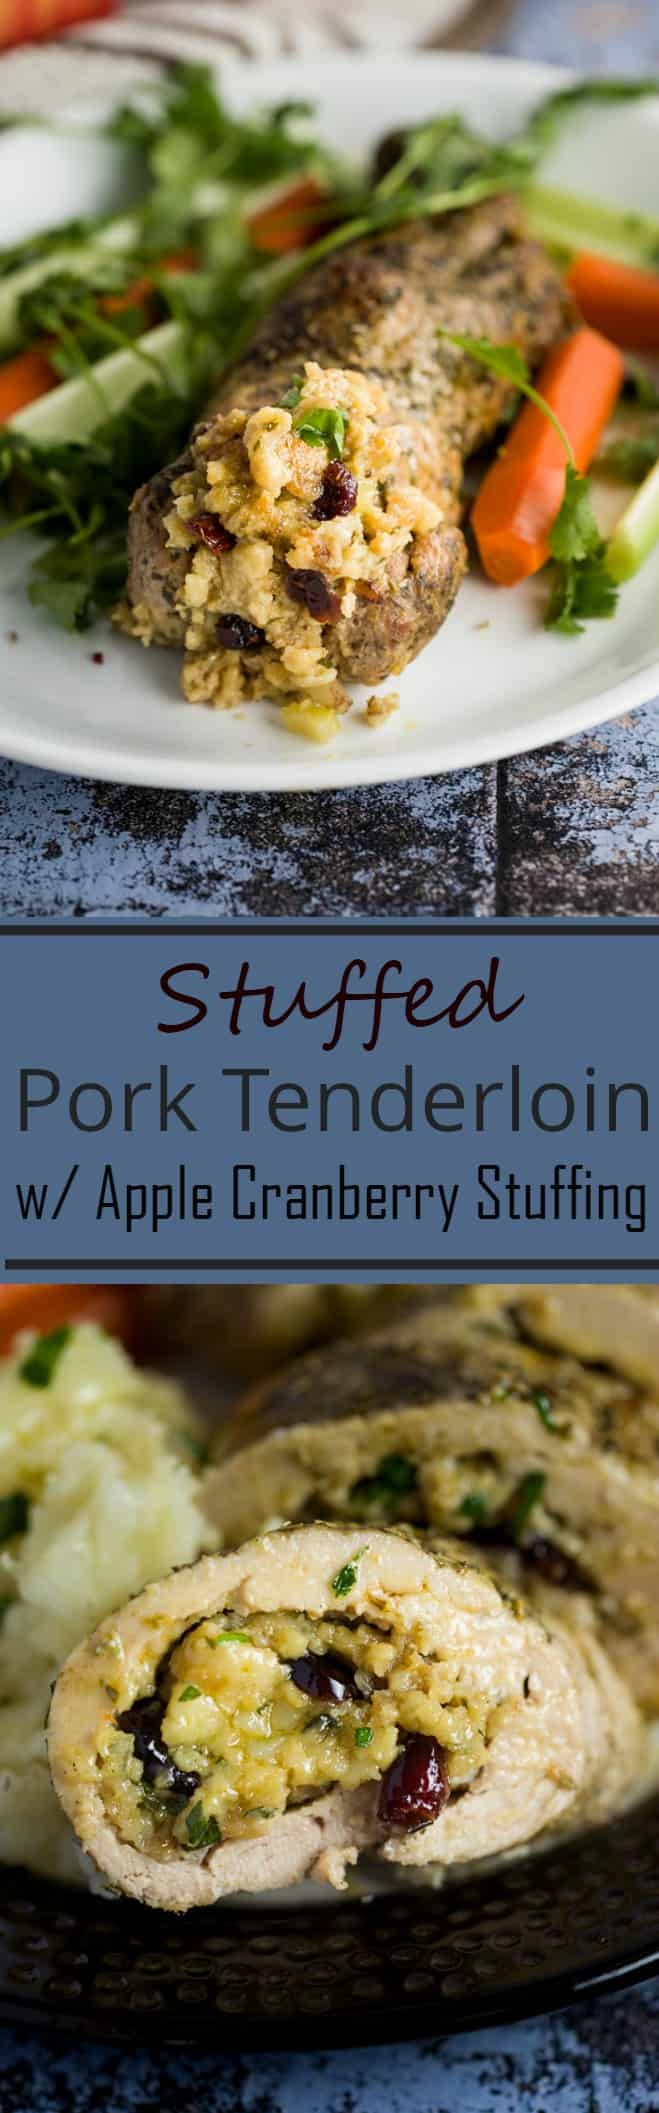 Stuffed Pork Tenderloin {with apple cranberry stuffing!}